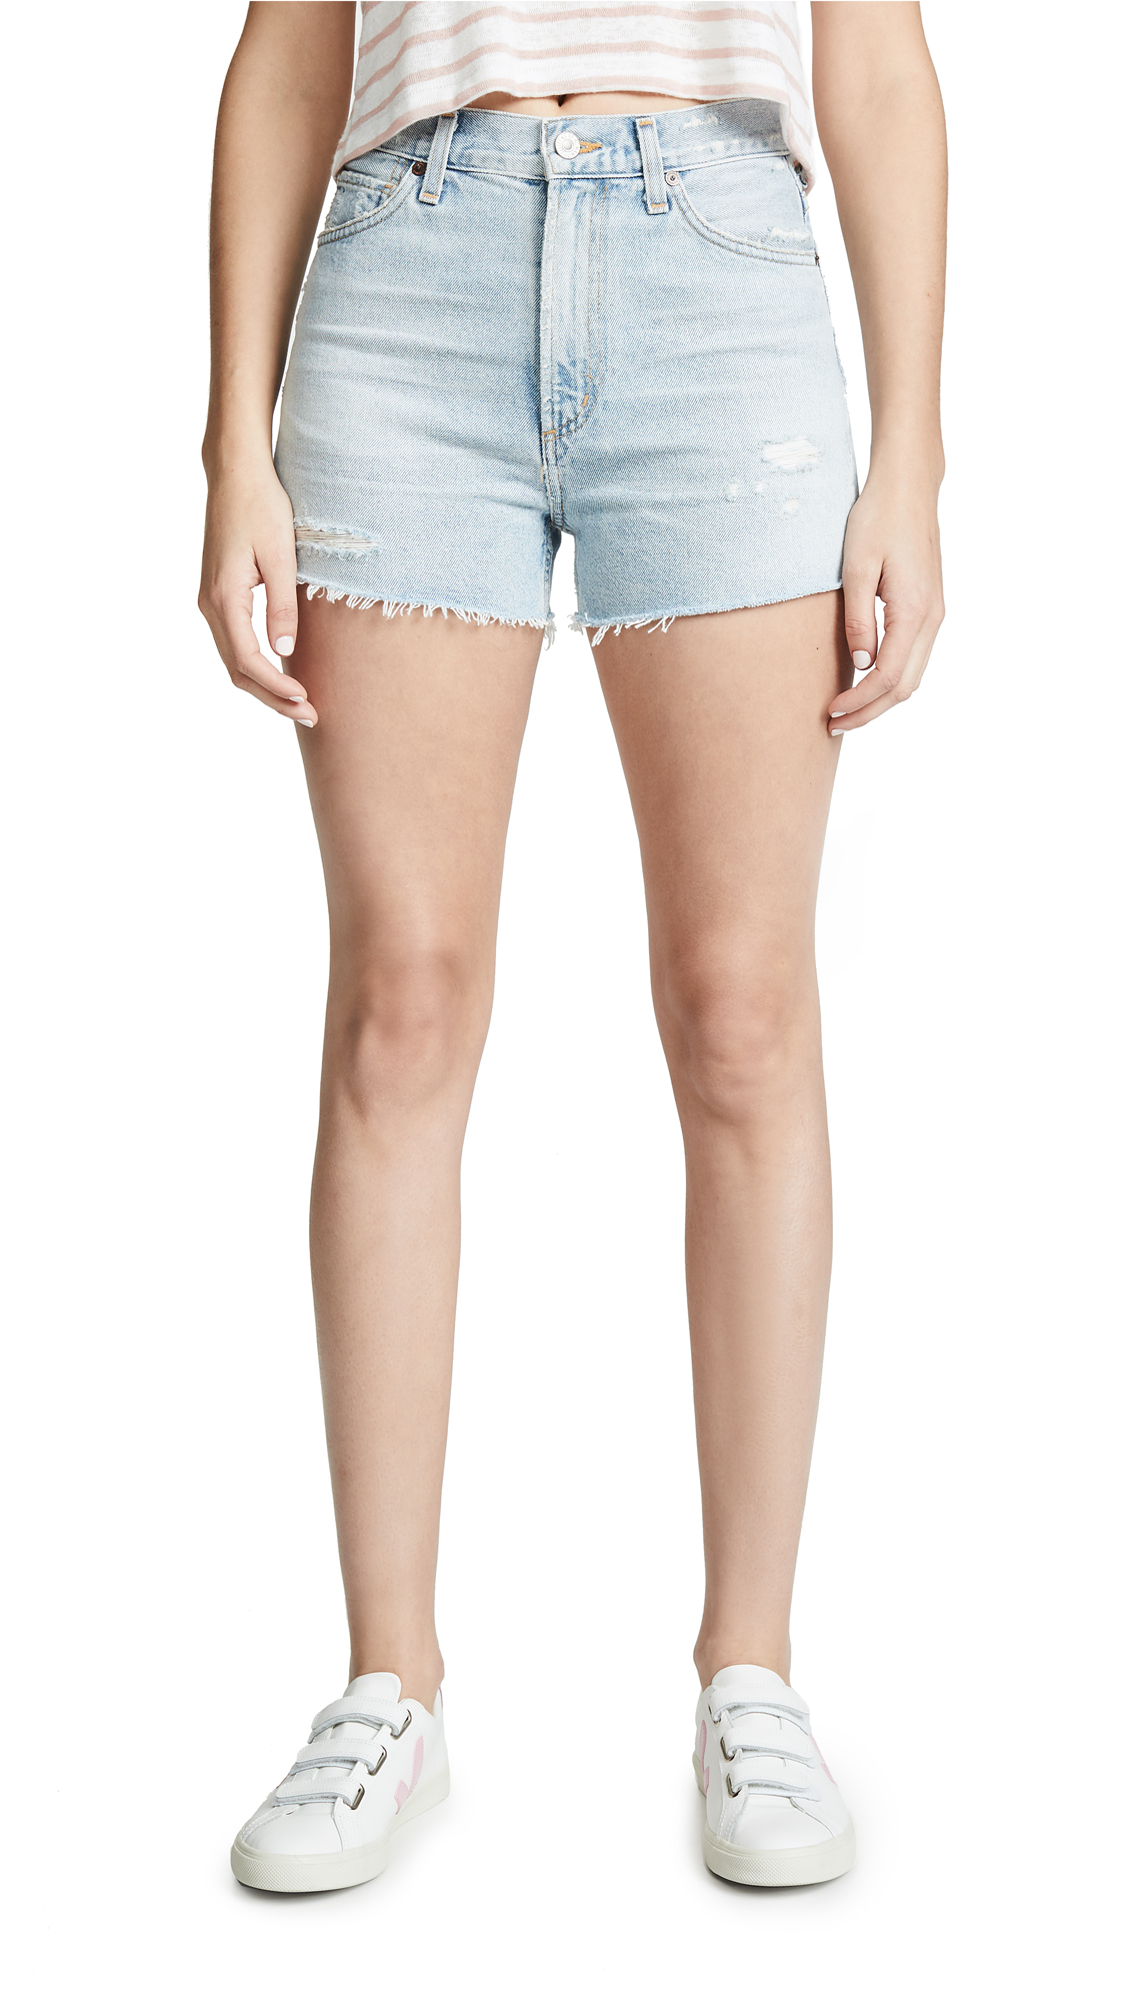 Citizens of Humanity Kristen High Rise Shorts - Forget Me Not